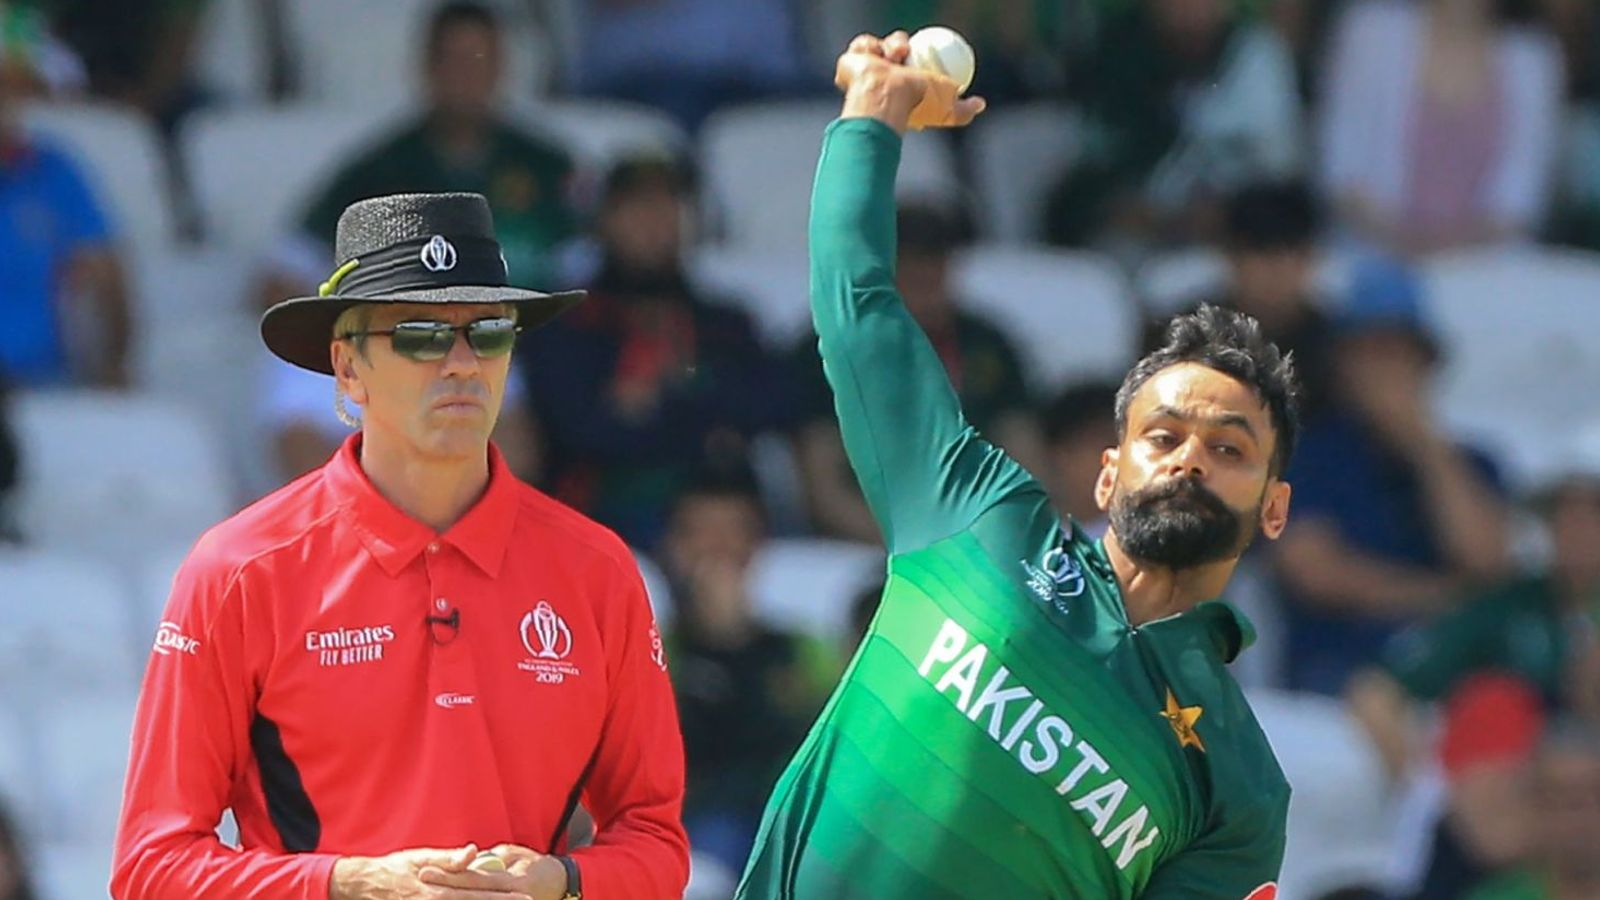 Pakistan's Mohammad Hafeez is free to bowl in ECB competitions after action cleared